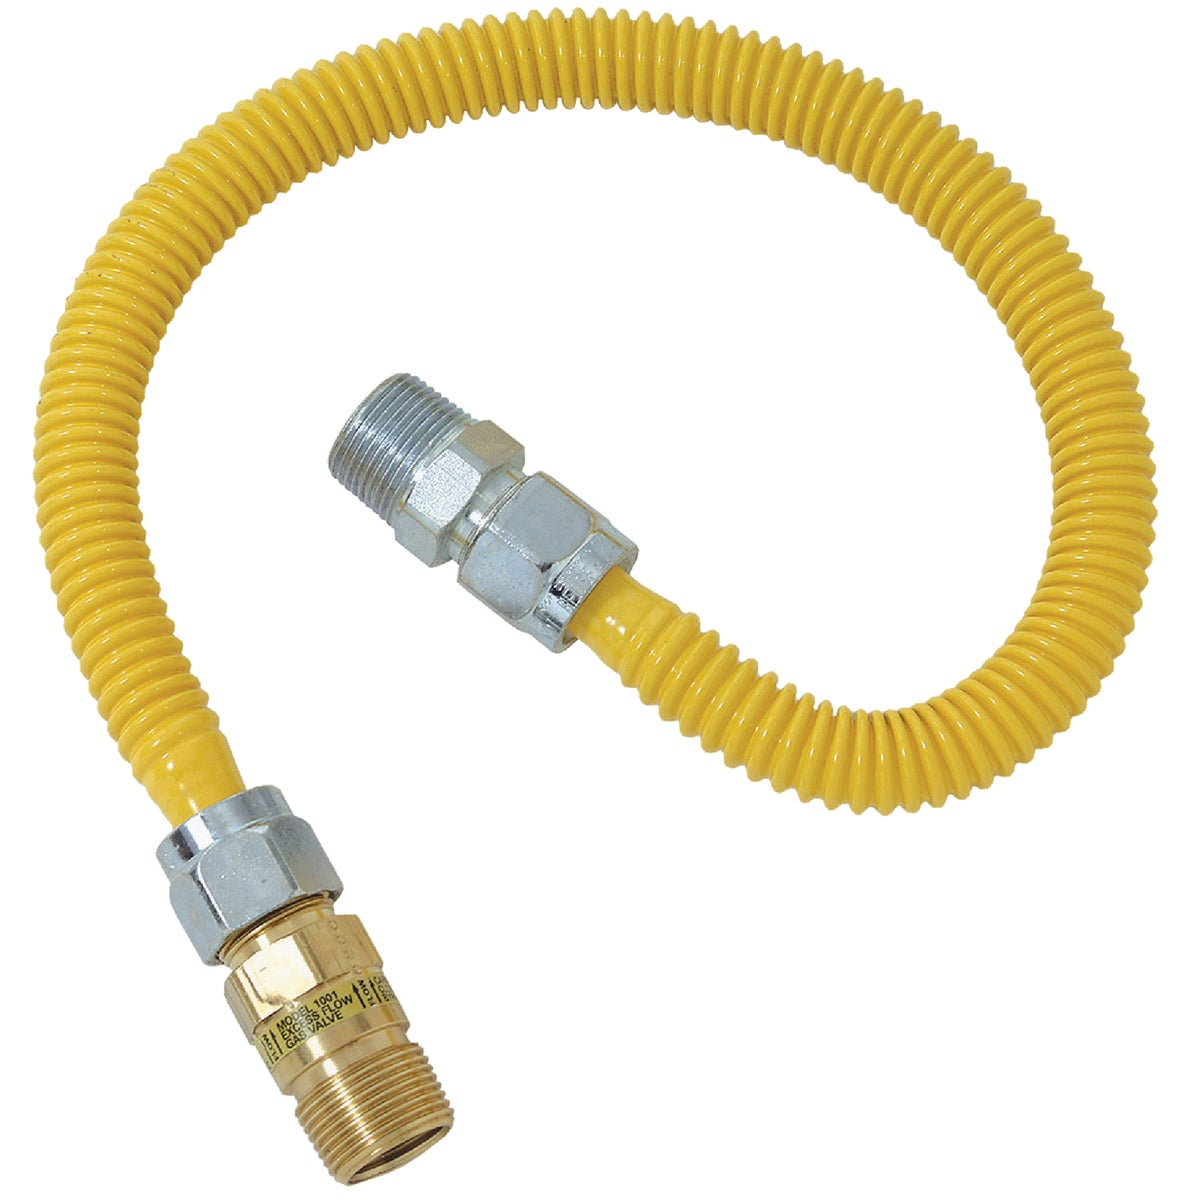 1/2X1/2-48 GAS CONNECTOR - CSSC44E-48P by Brass Craft